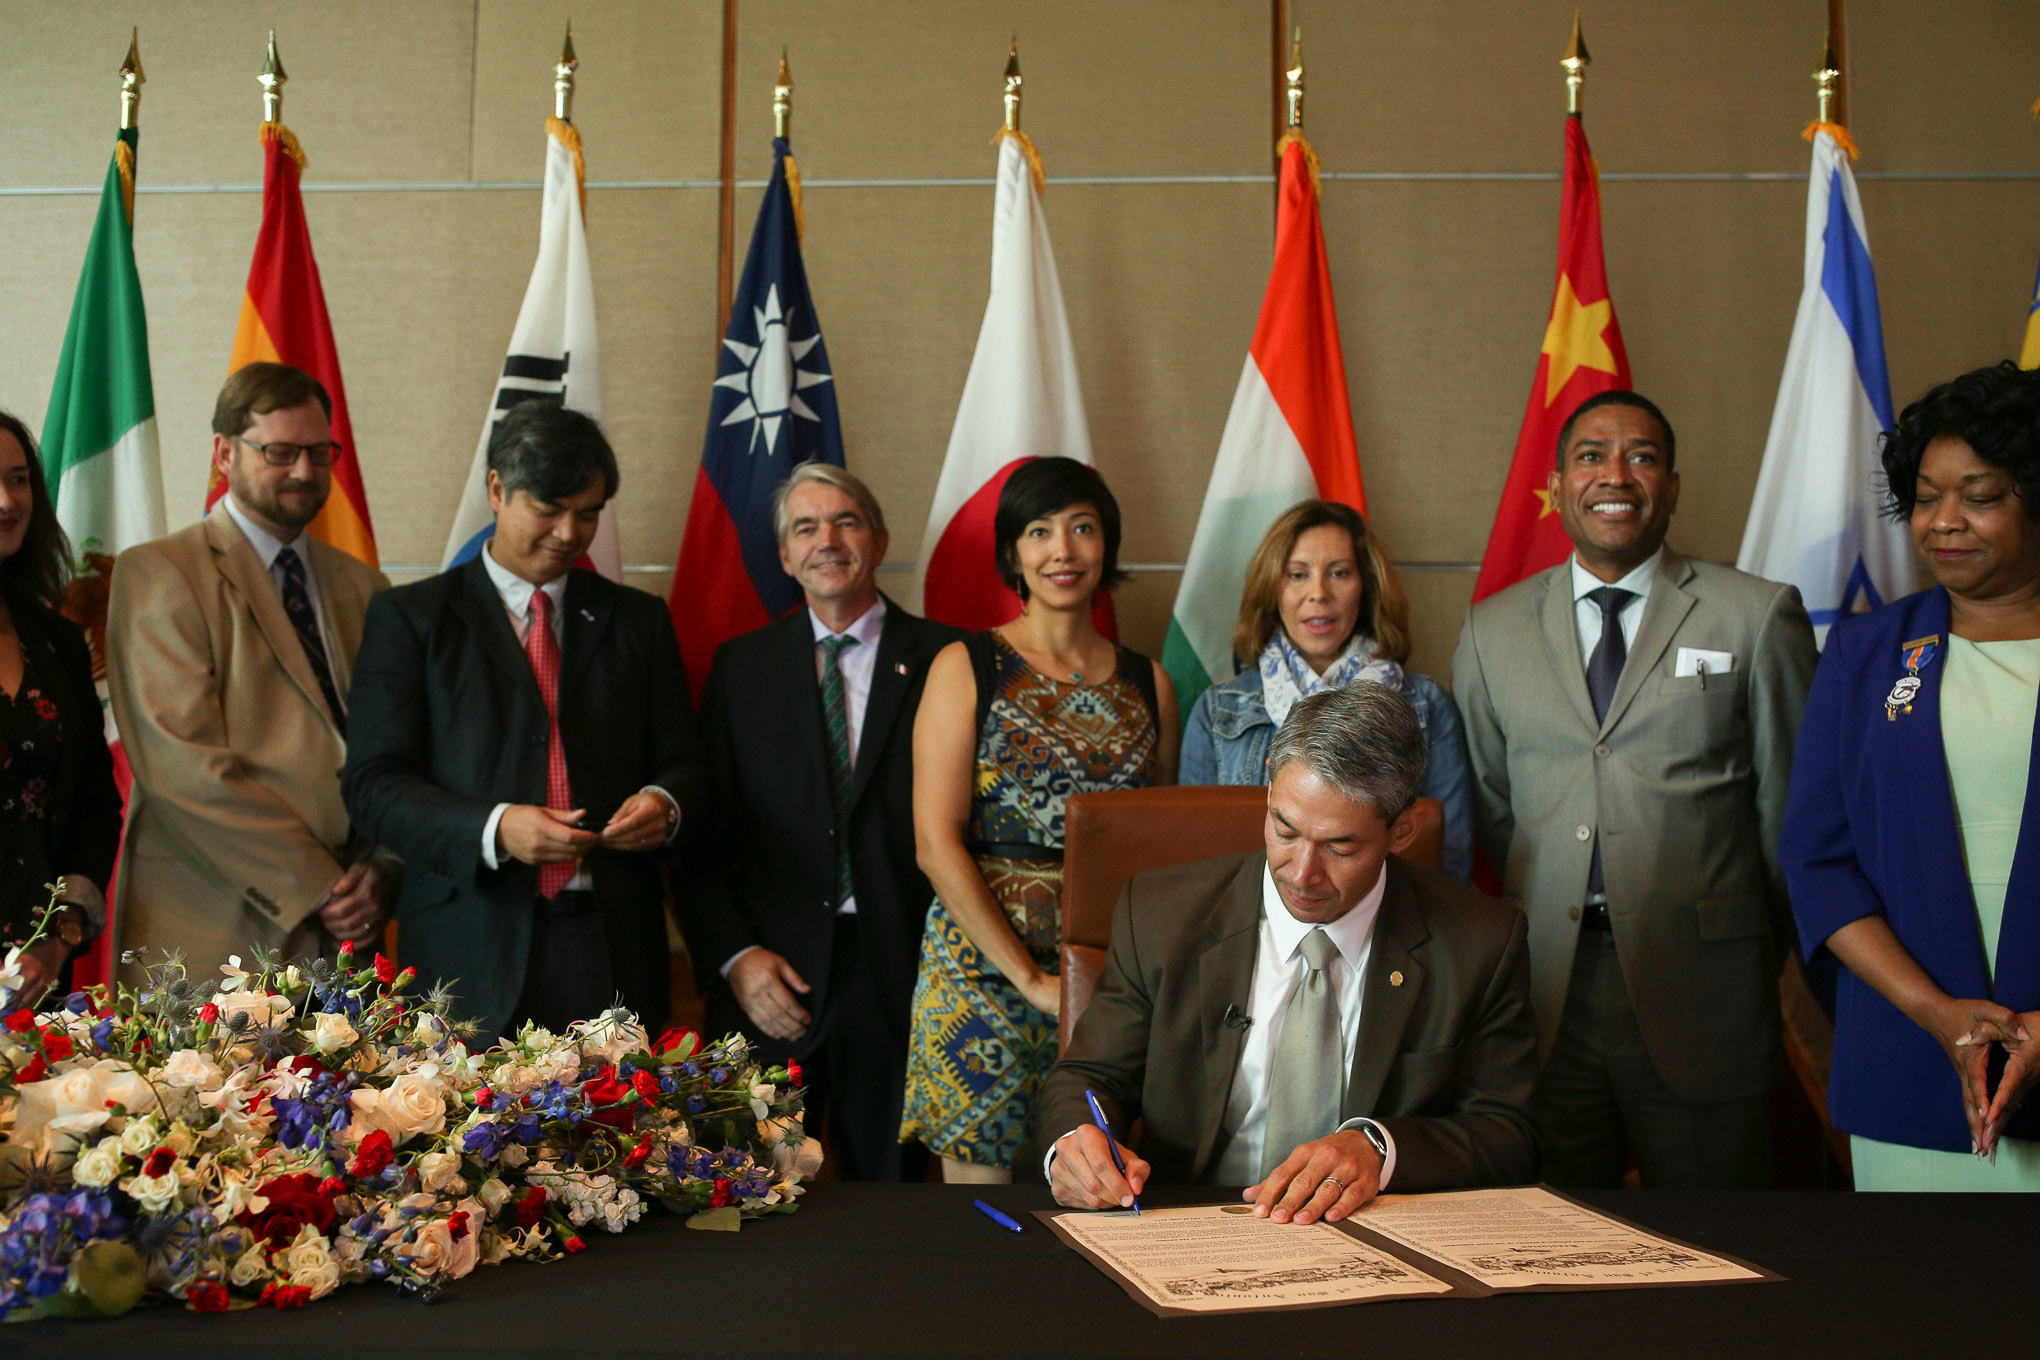 Mayor Ron Nirenberg formally signs the resolution in support of the Paris Agreement as San Antonio leaders stand behind him.